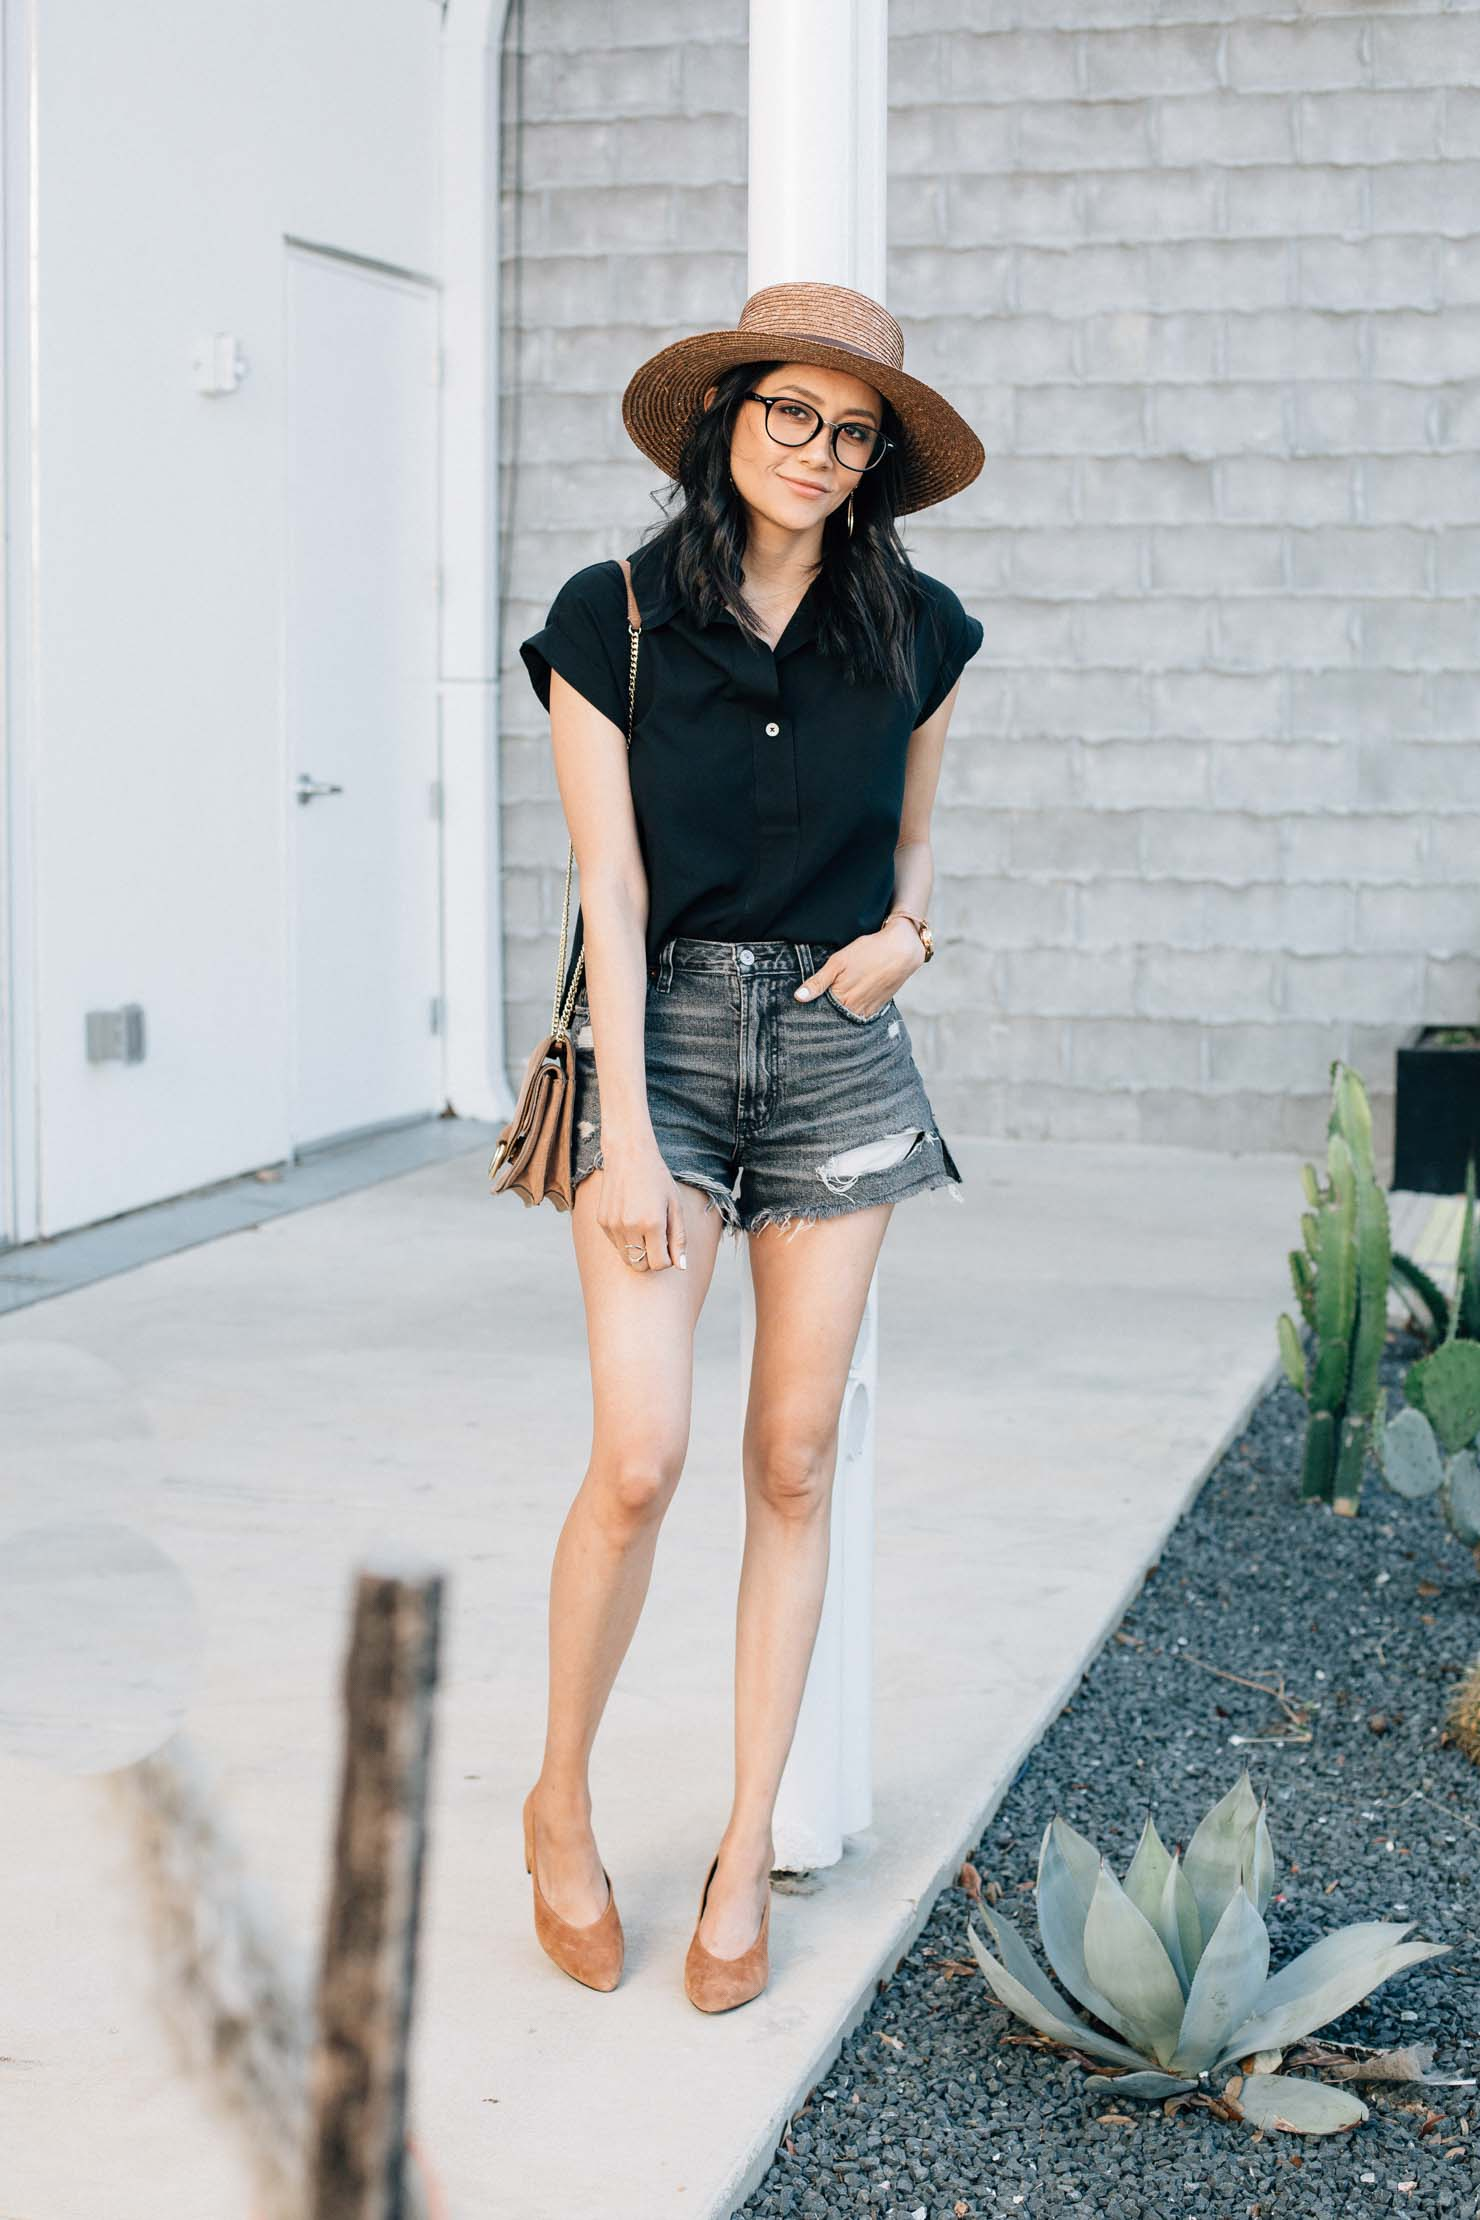 Fashion blogger Lilly Beltran styles Abercrombie high waisted Denim shorts with a black top and brown suede pumps for an effortless summer look